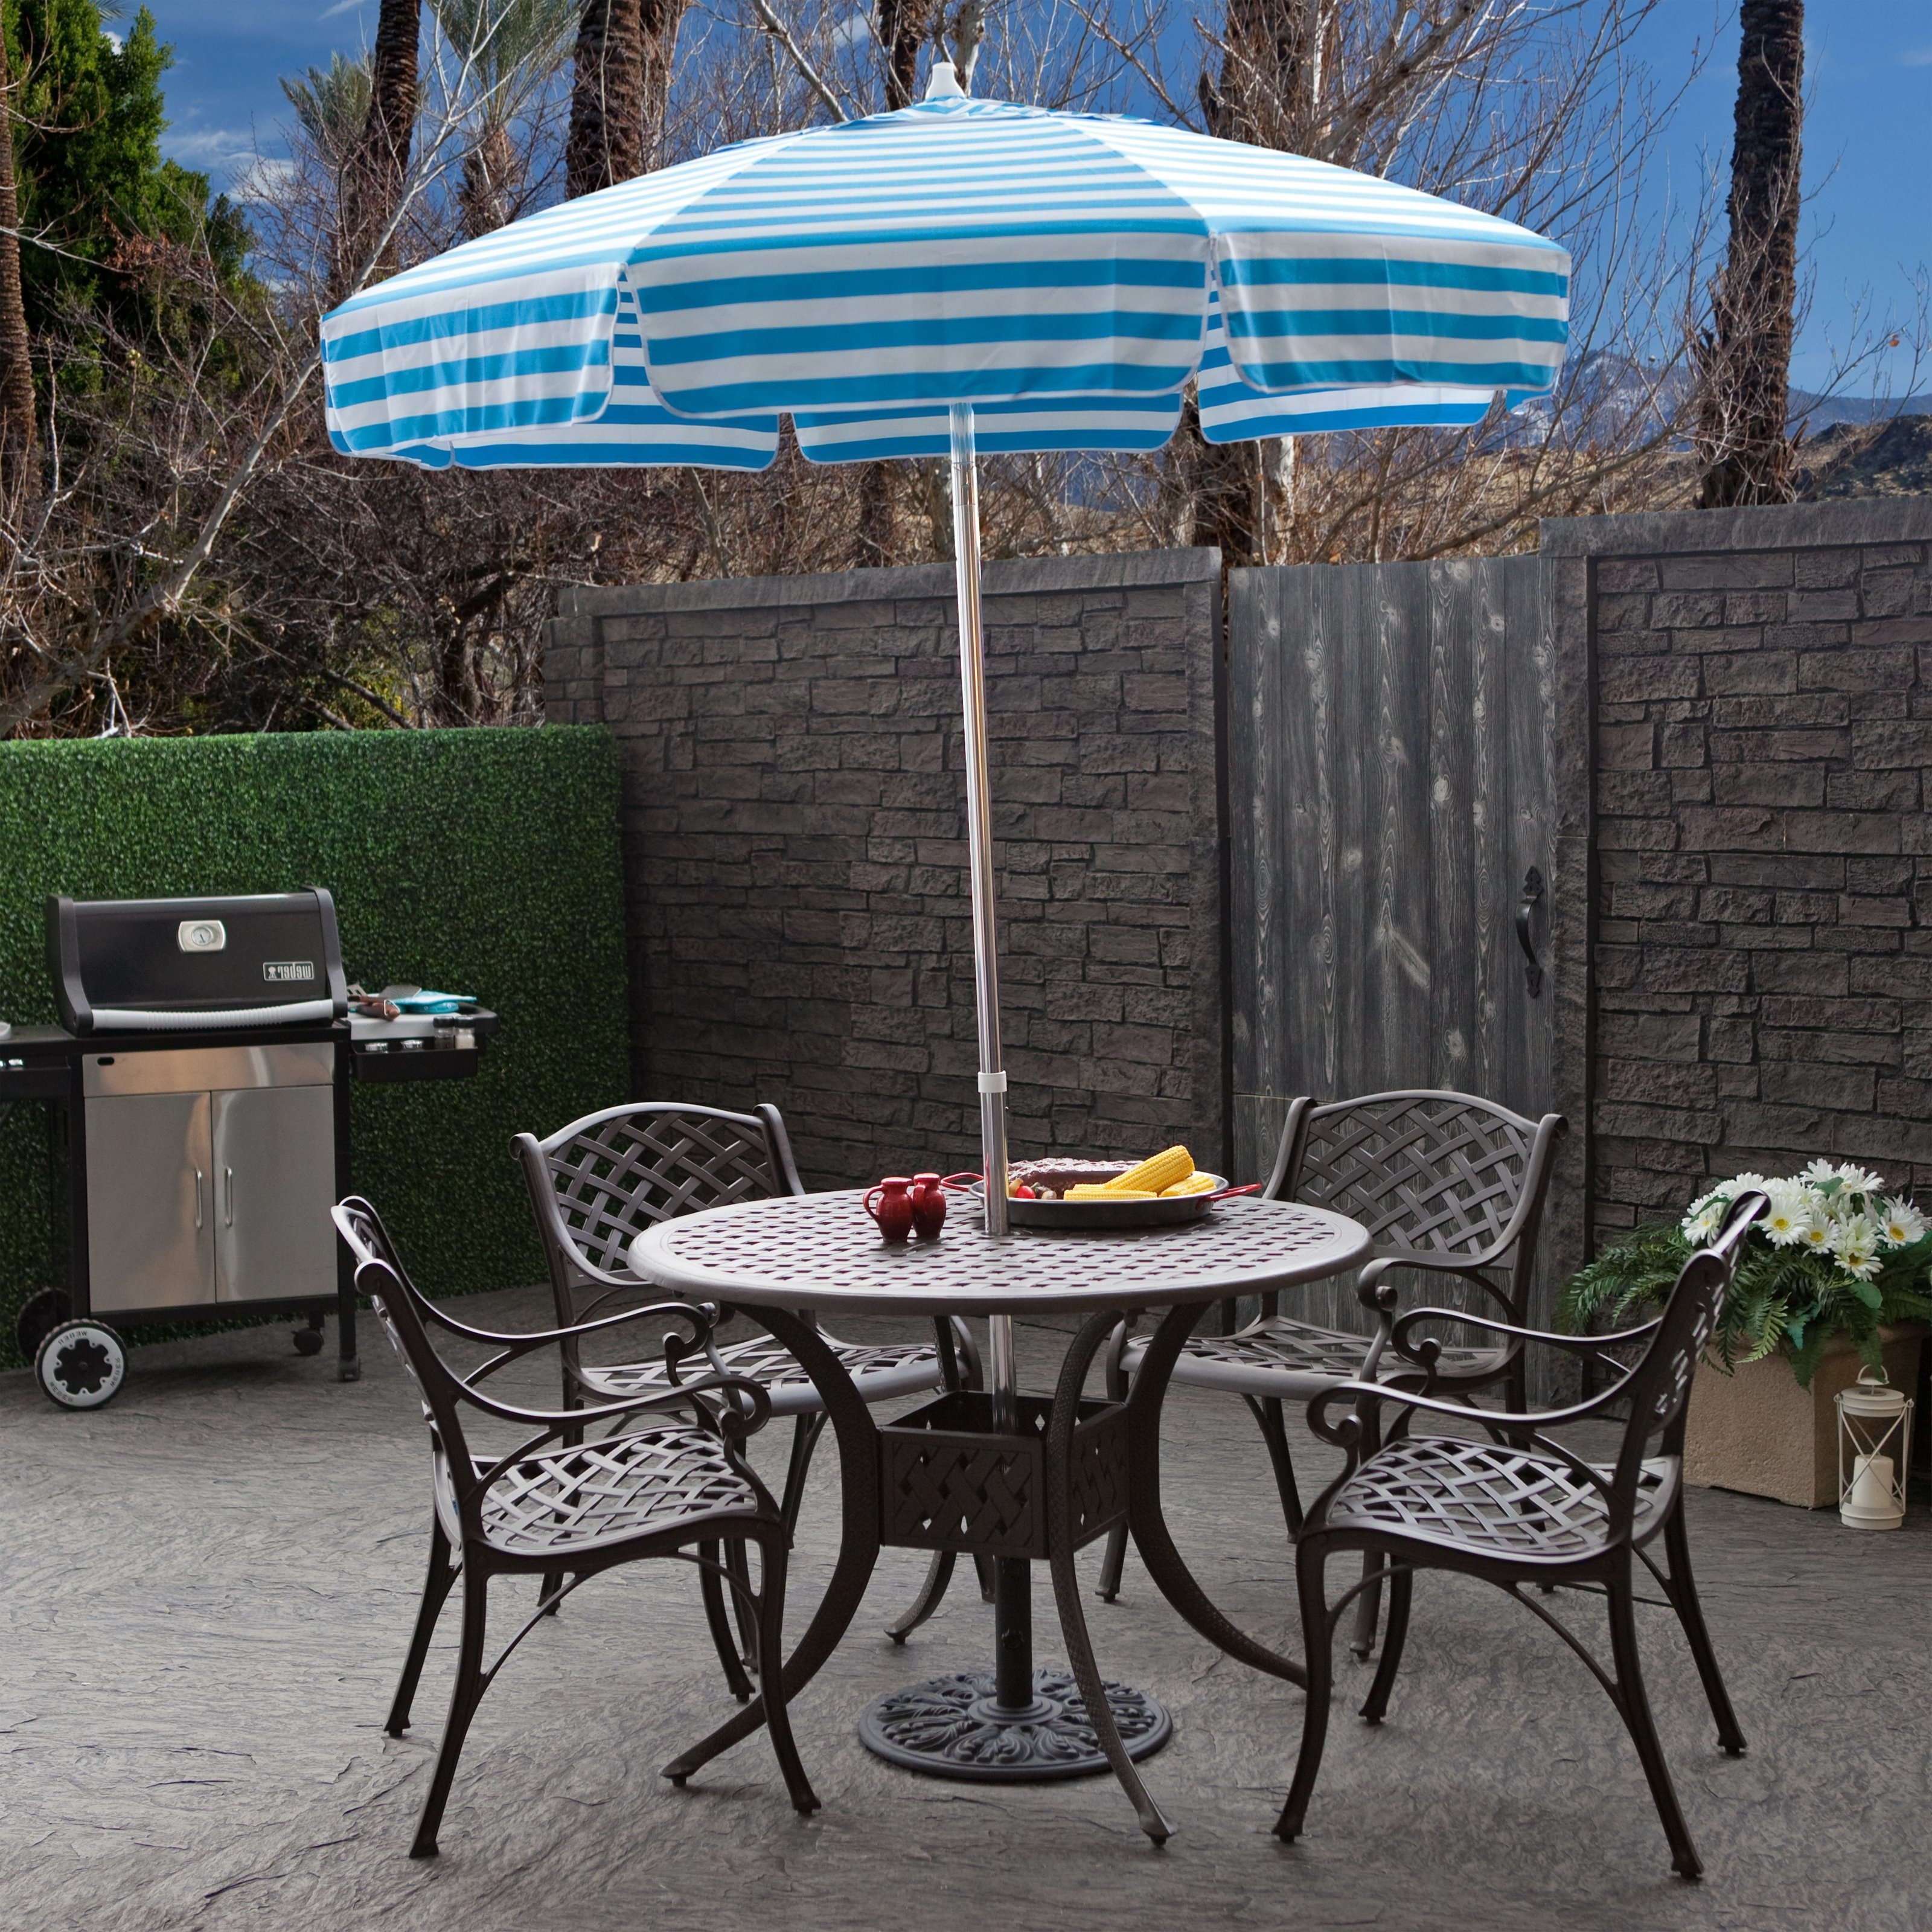 Patio Umbrellas For Tables For Well Known Incredible Patio Table Umbrellas Destinationgear 6 Ft Aluminum (View 14 of 20)